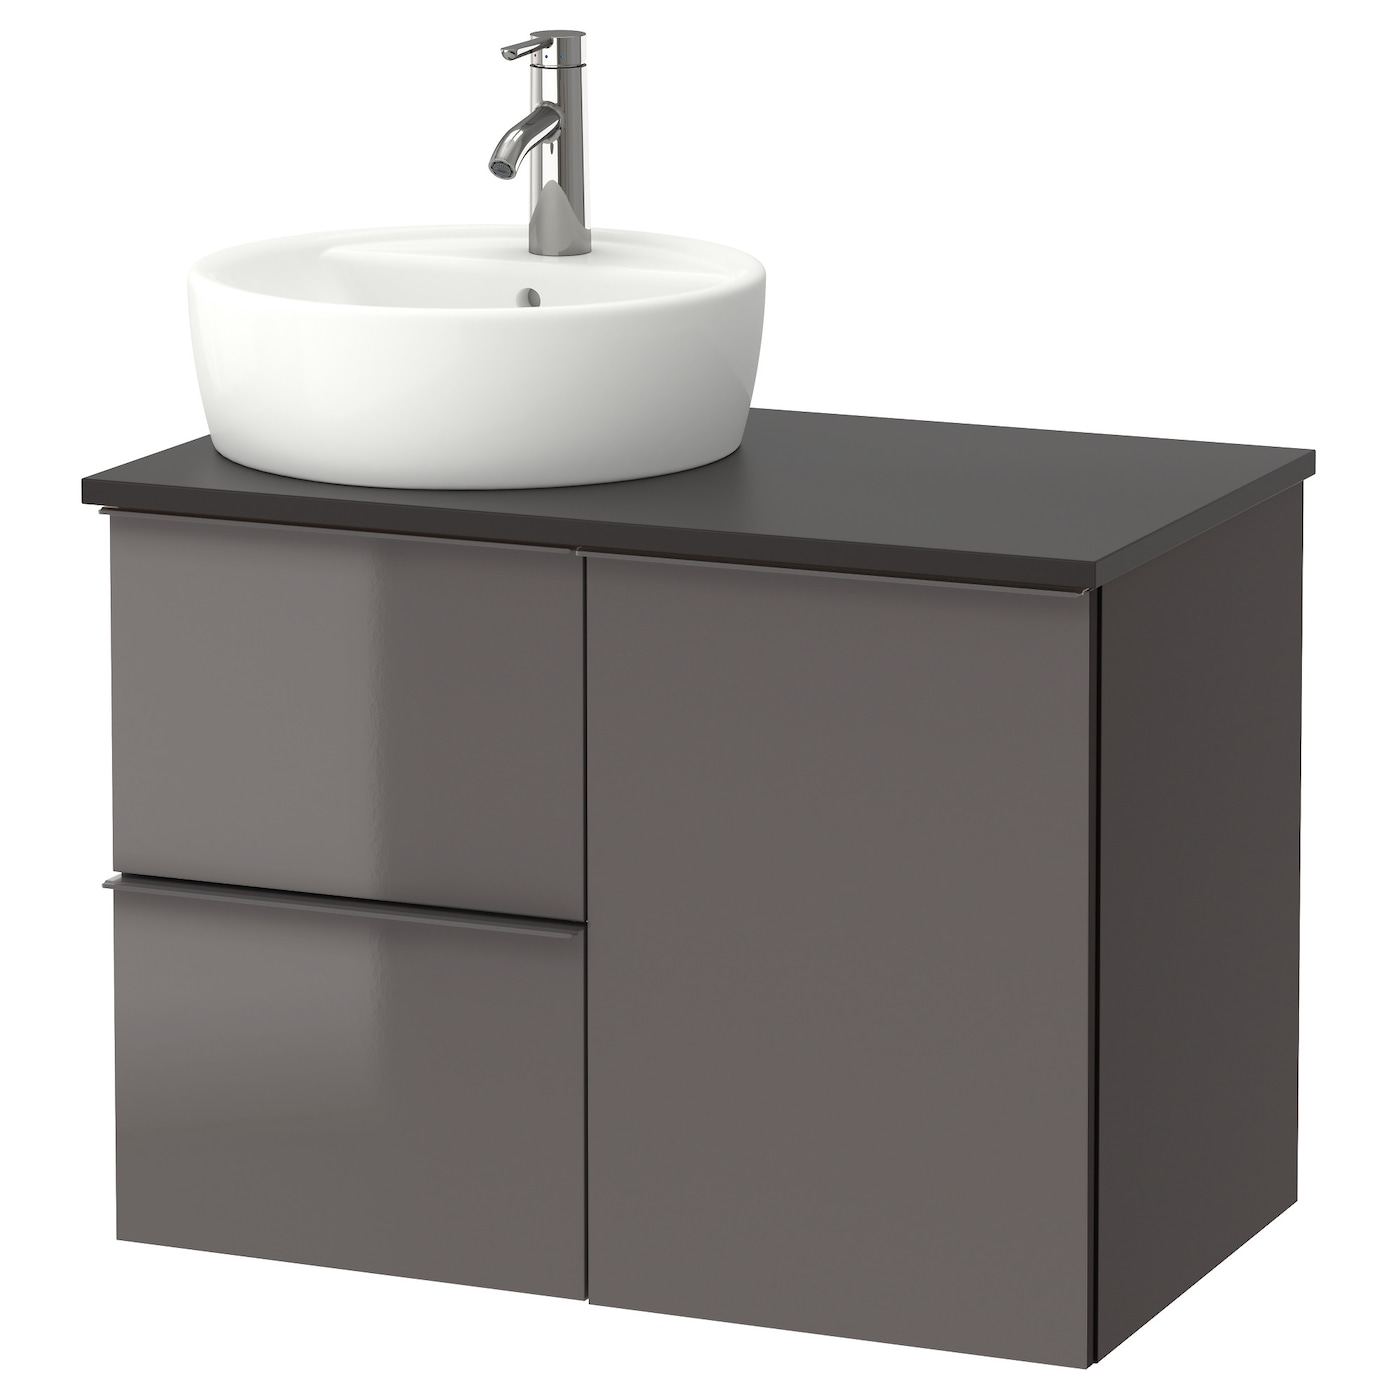 meuble pour lavabo ikea. Black Bedroom Furniture Sets. Home Design Ideas